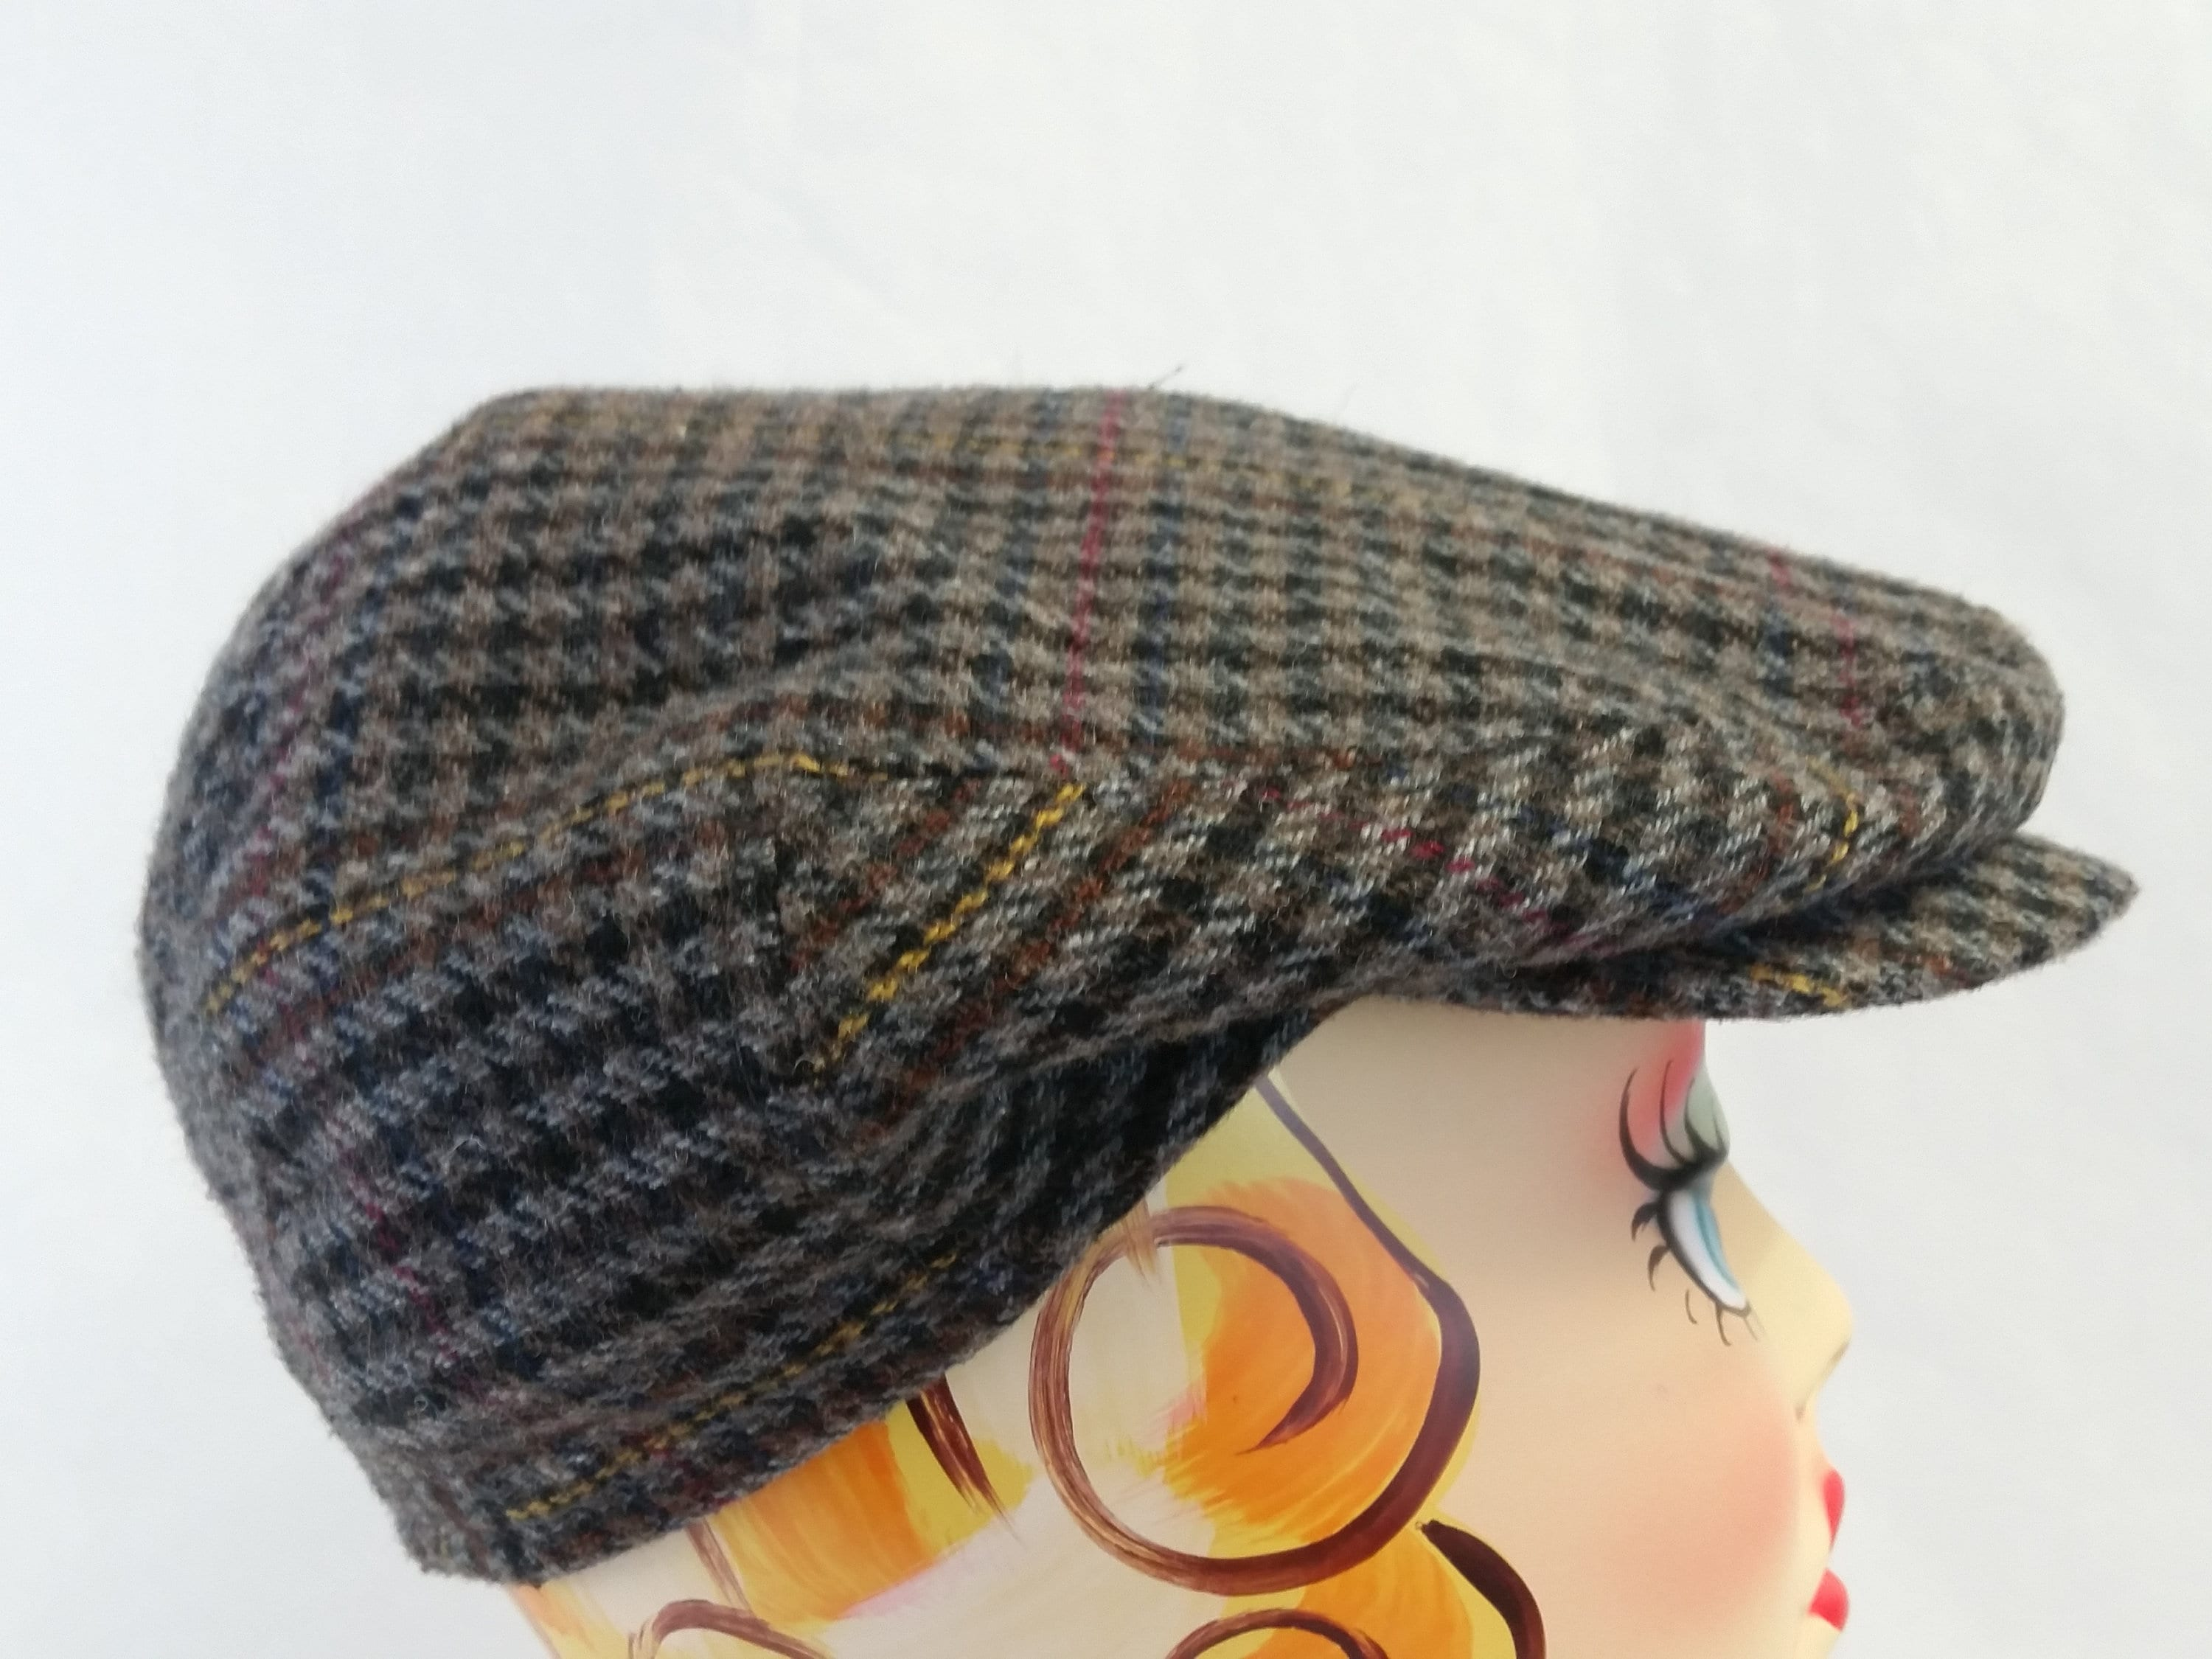 Vintage COUNTRY GENTLEMAN Plaid Italian Cabbie Cap Newsboy Hat  0f7834865e6